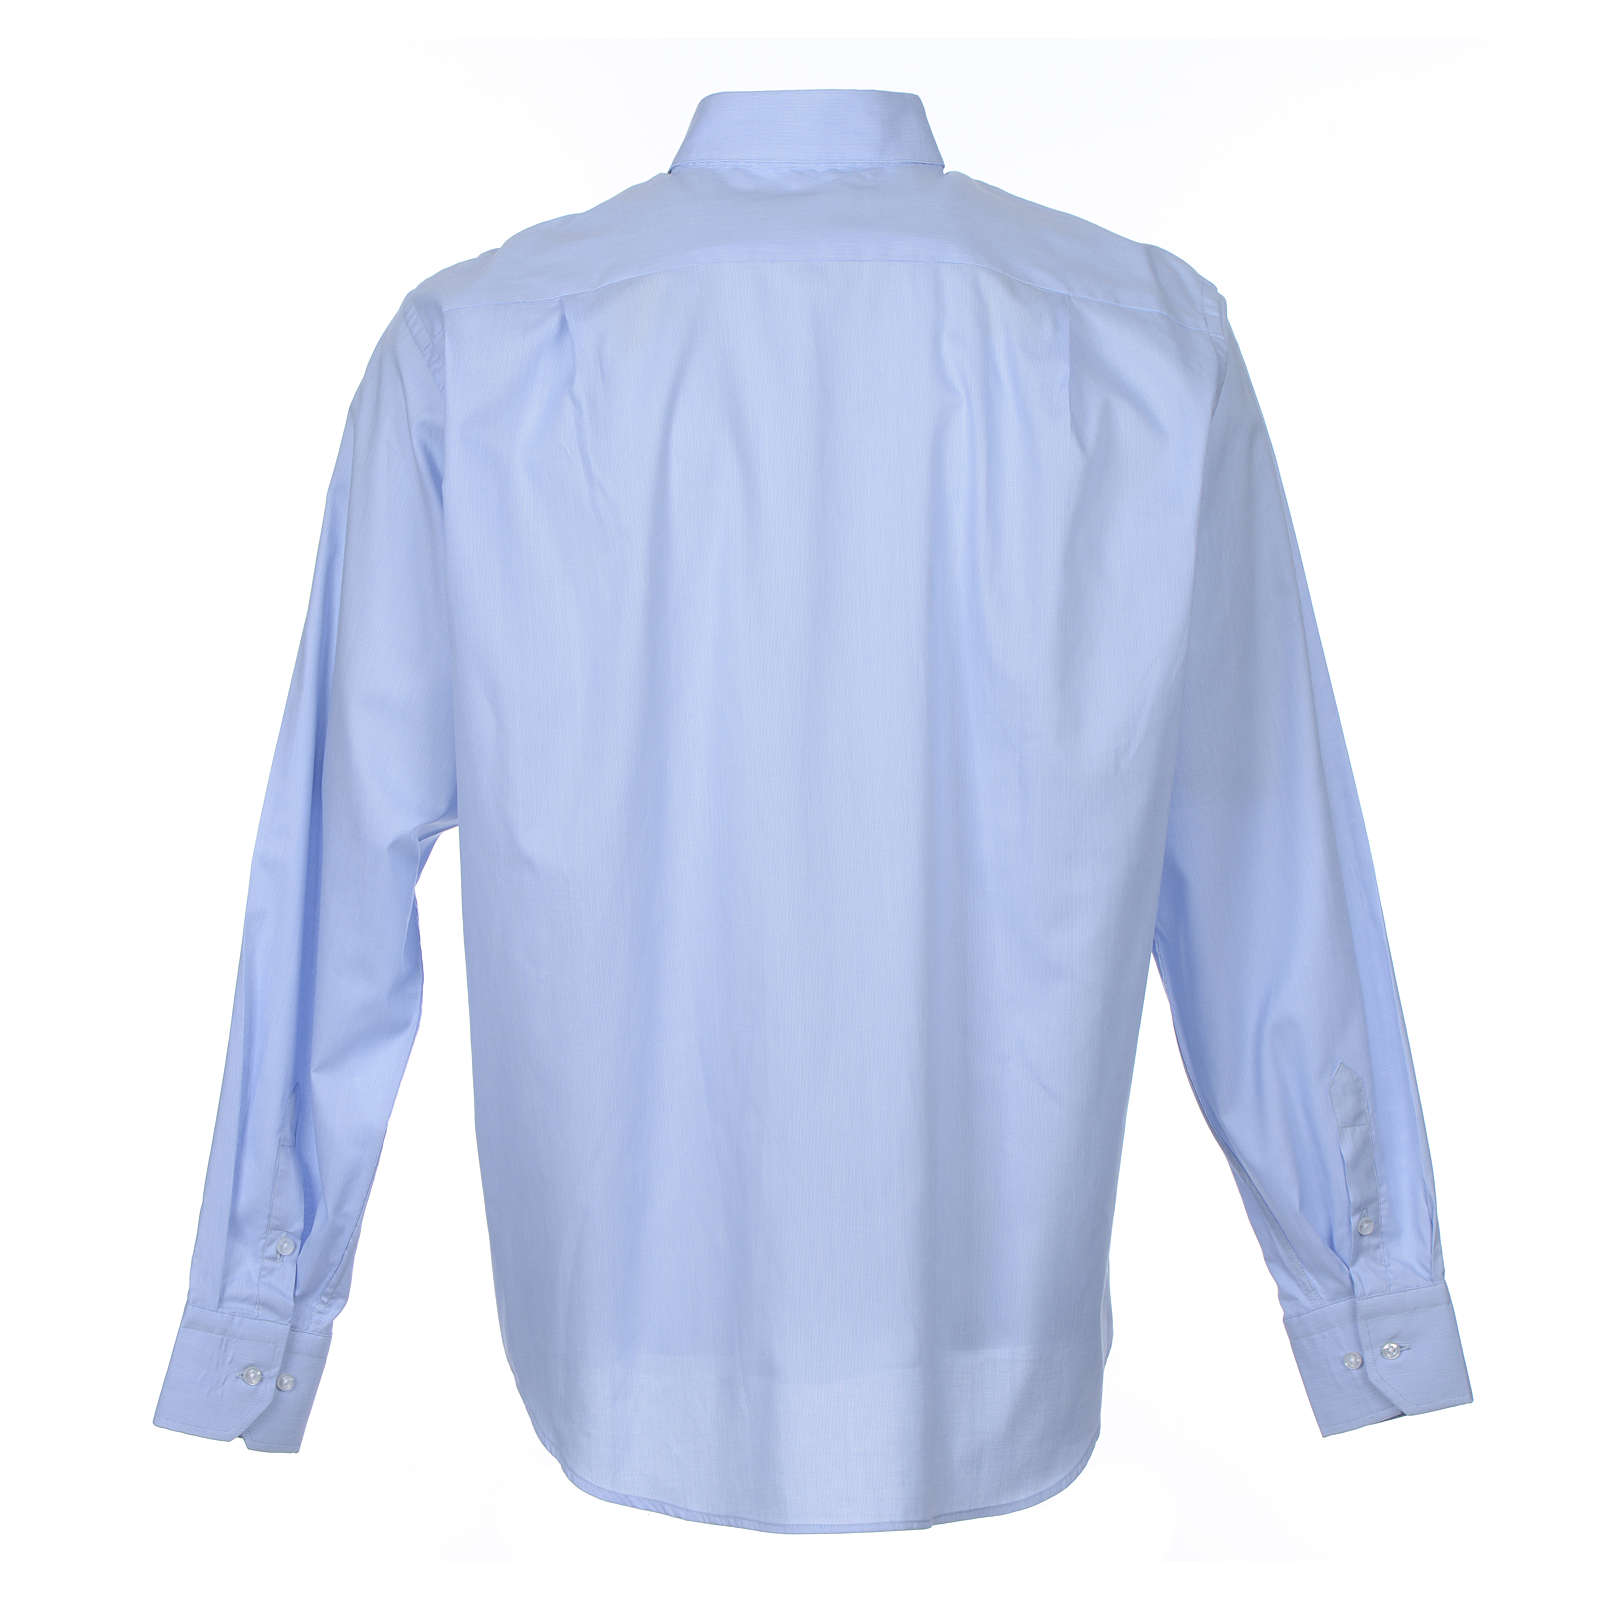 Minister long sleeve shirt Prestige Line mixed cotton, light blue 4